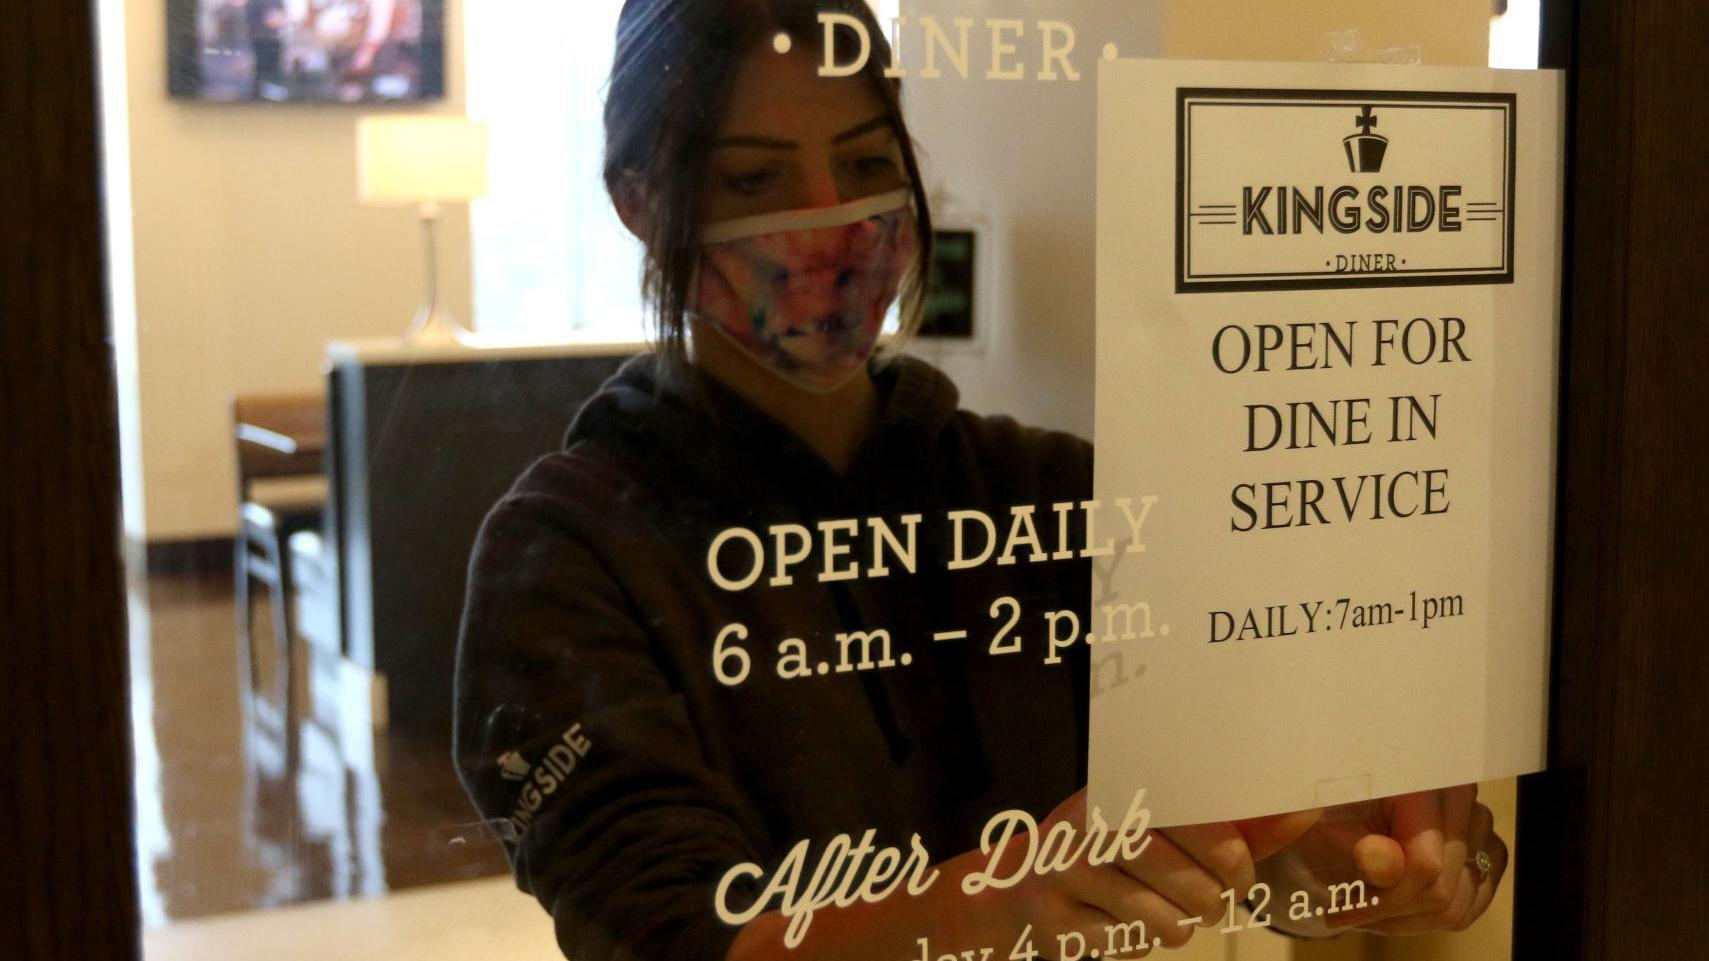 St. Louis County restaurants resume limited indoor dining